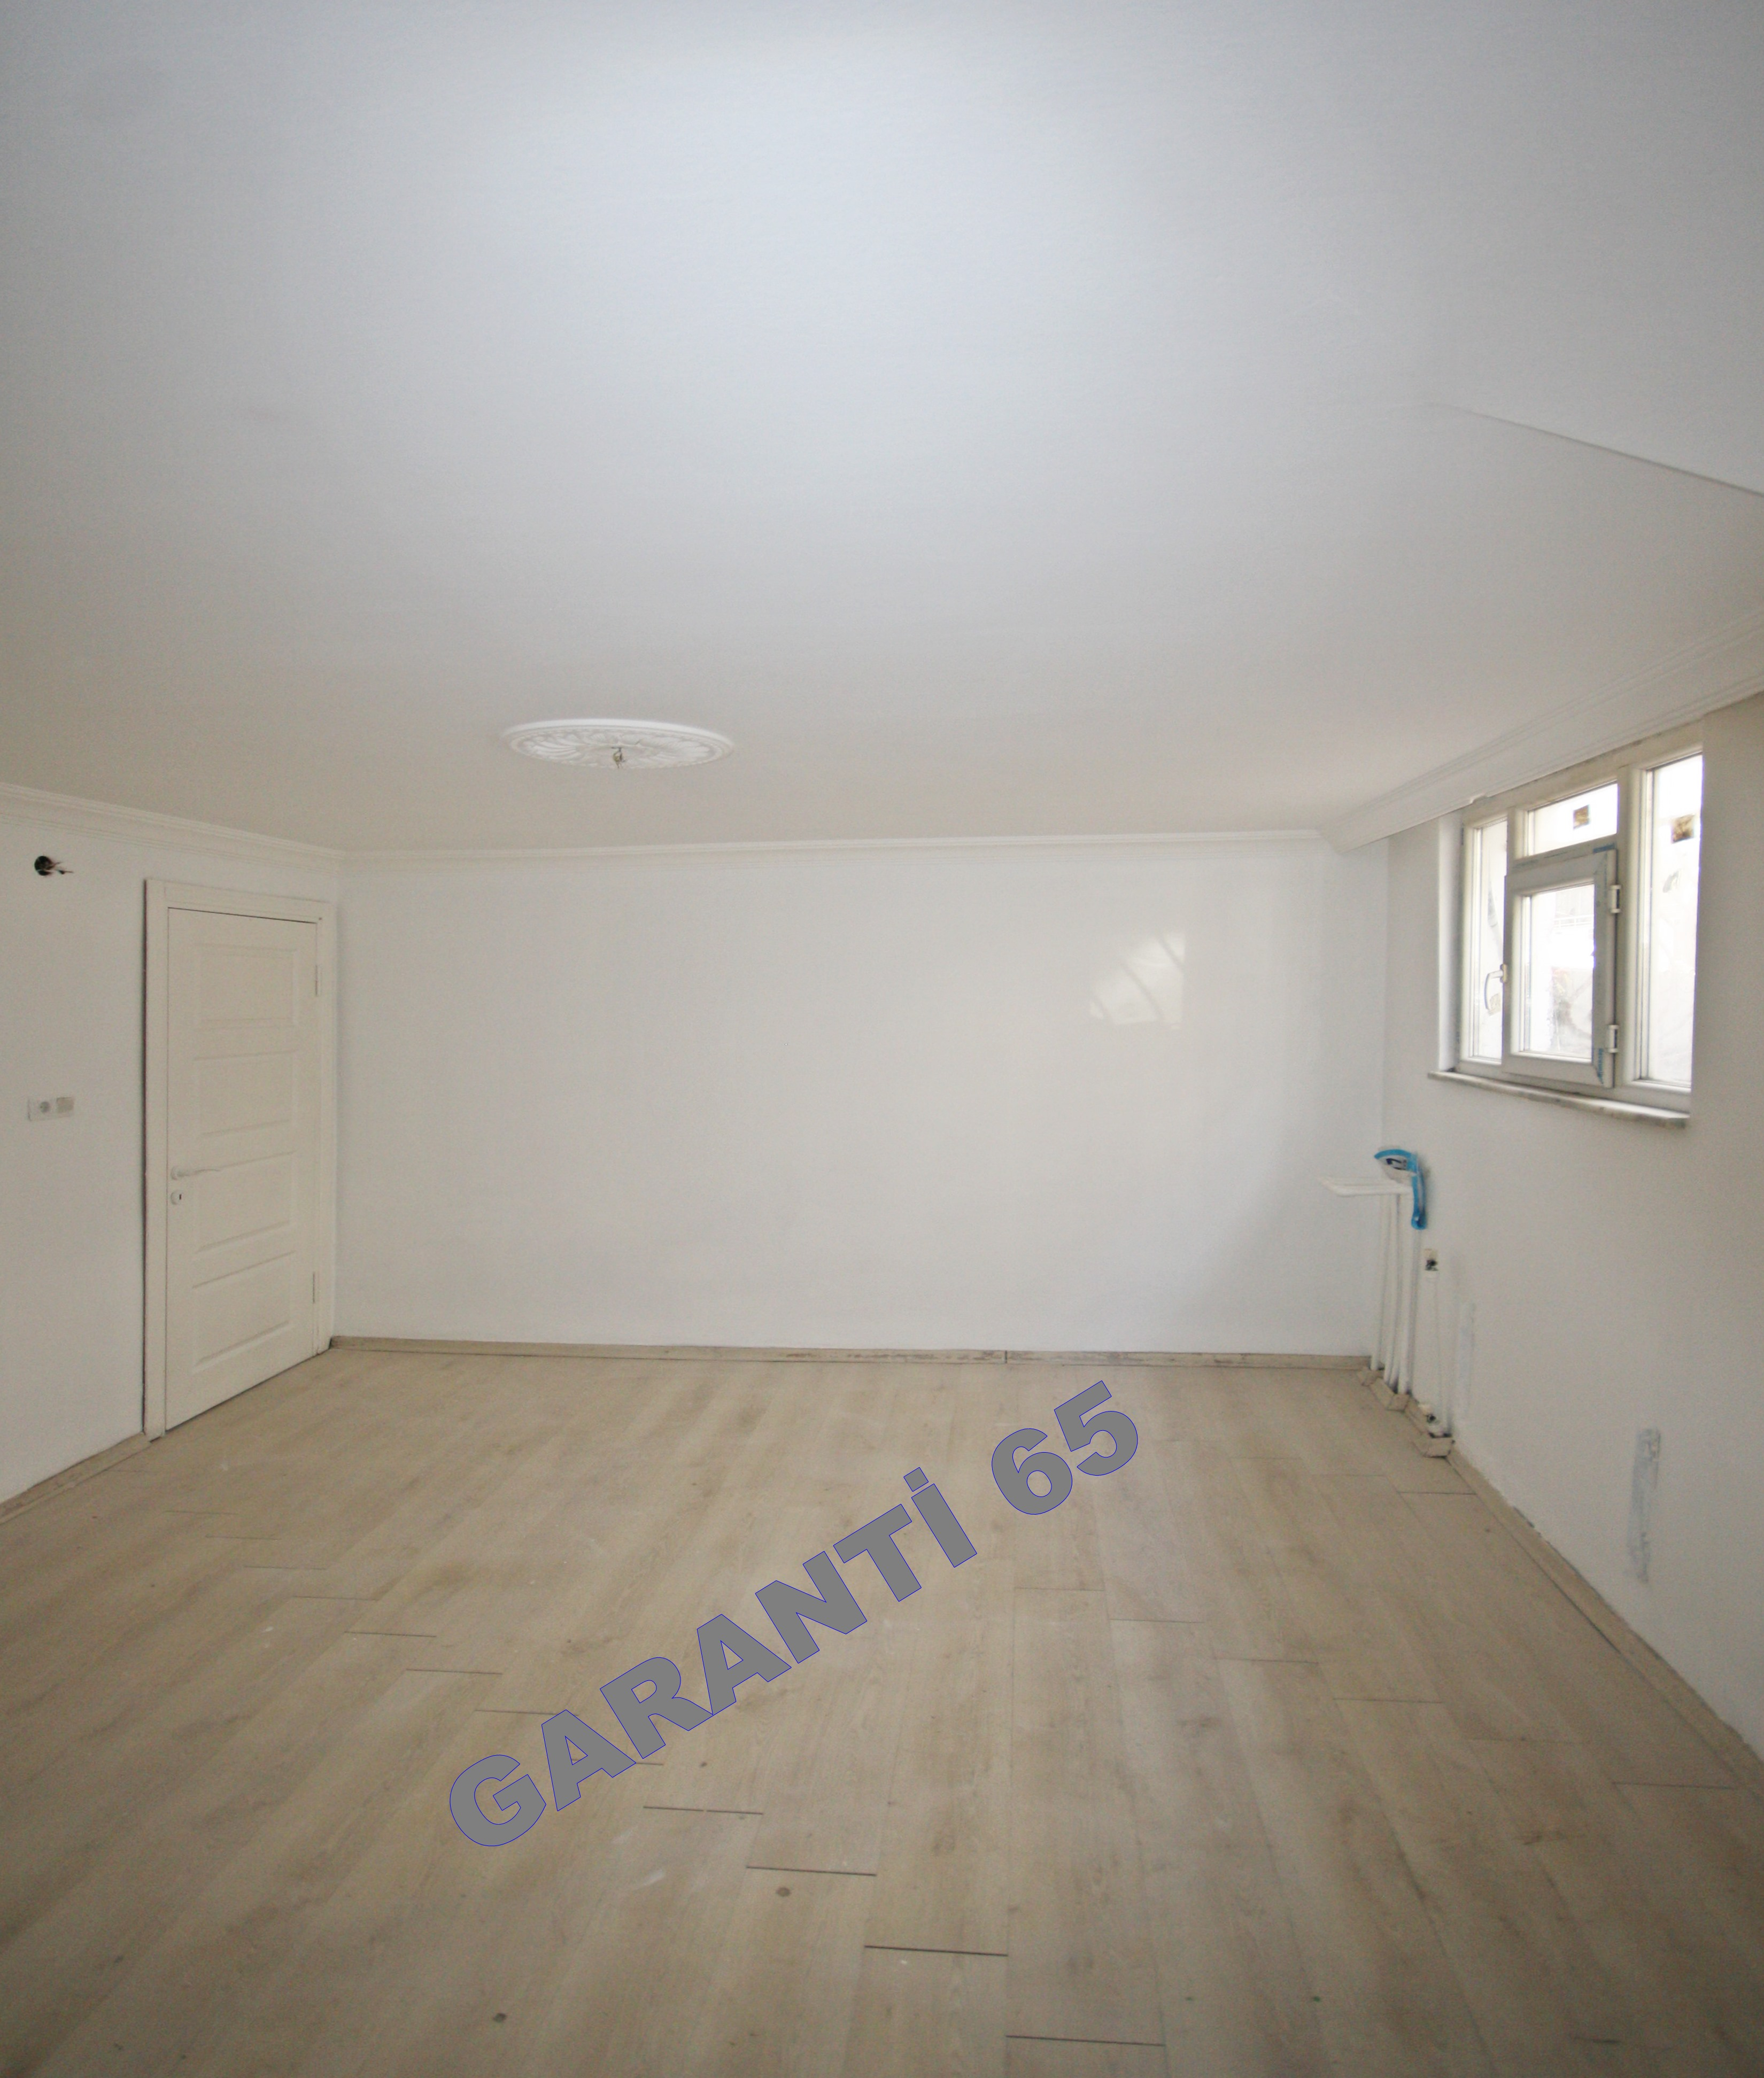 Apartments For Rent For Cheap: 1+1 Apartment For Sale At Cheap Price In Istanbul (Turkey